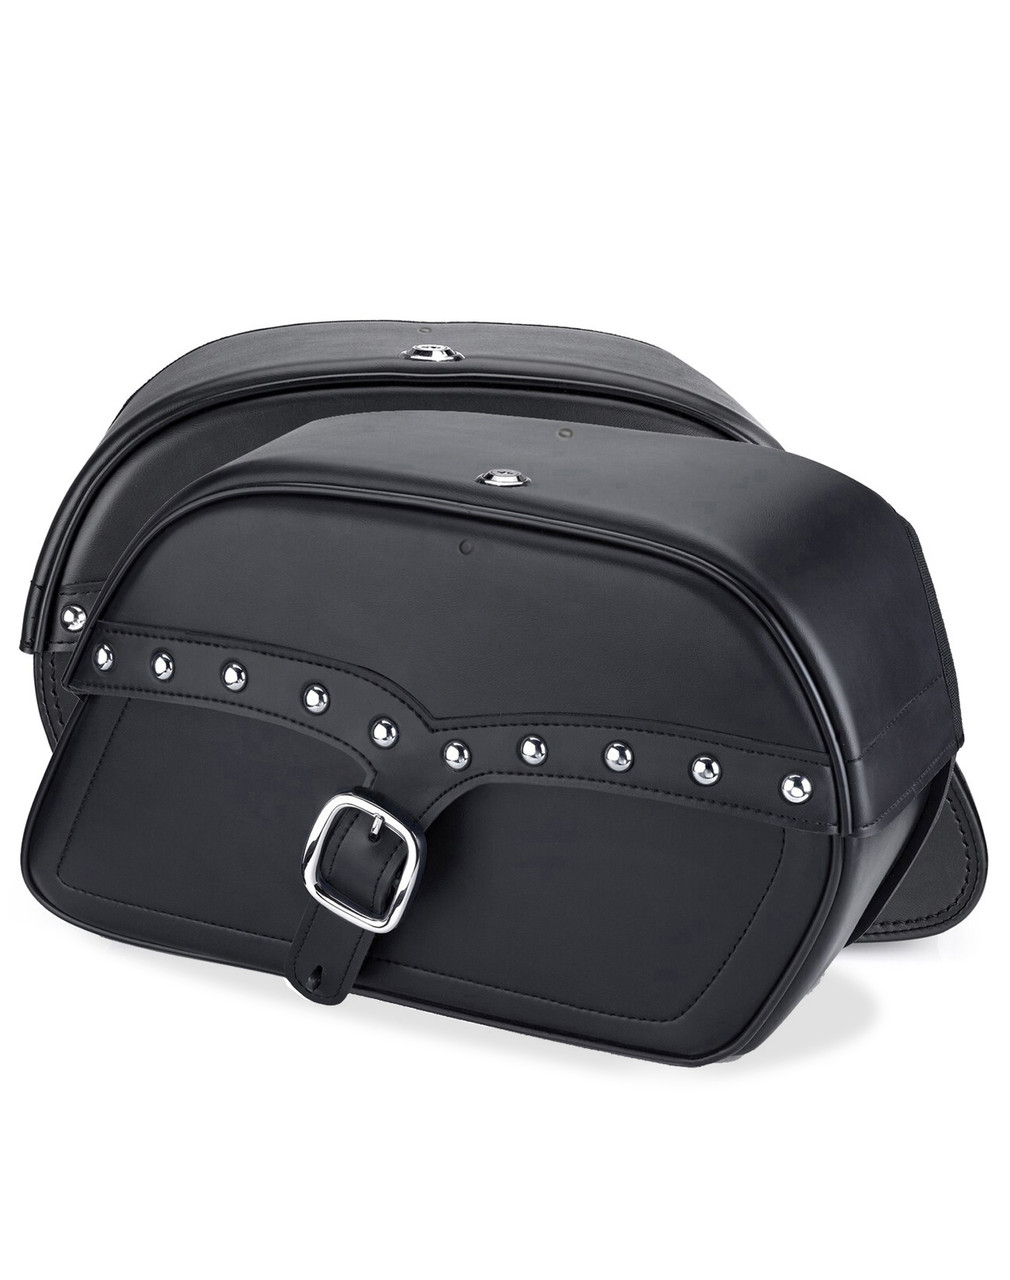 Viking Large SS Shock Cutout Slanted Studded Motorcycle Saddlebags For Harley Sportster 1200 Nightste XL1200Nr Both Bags view